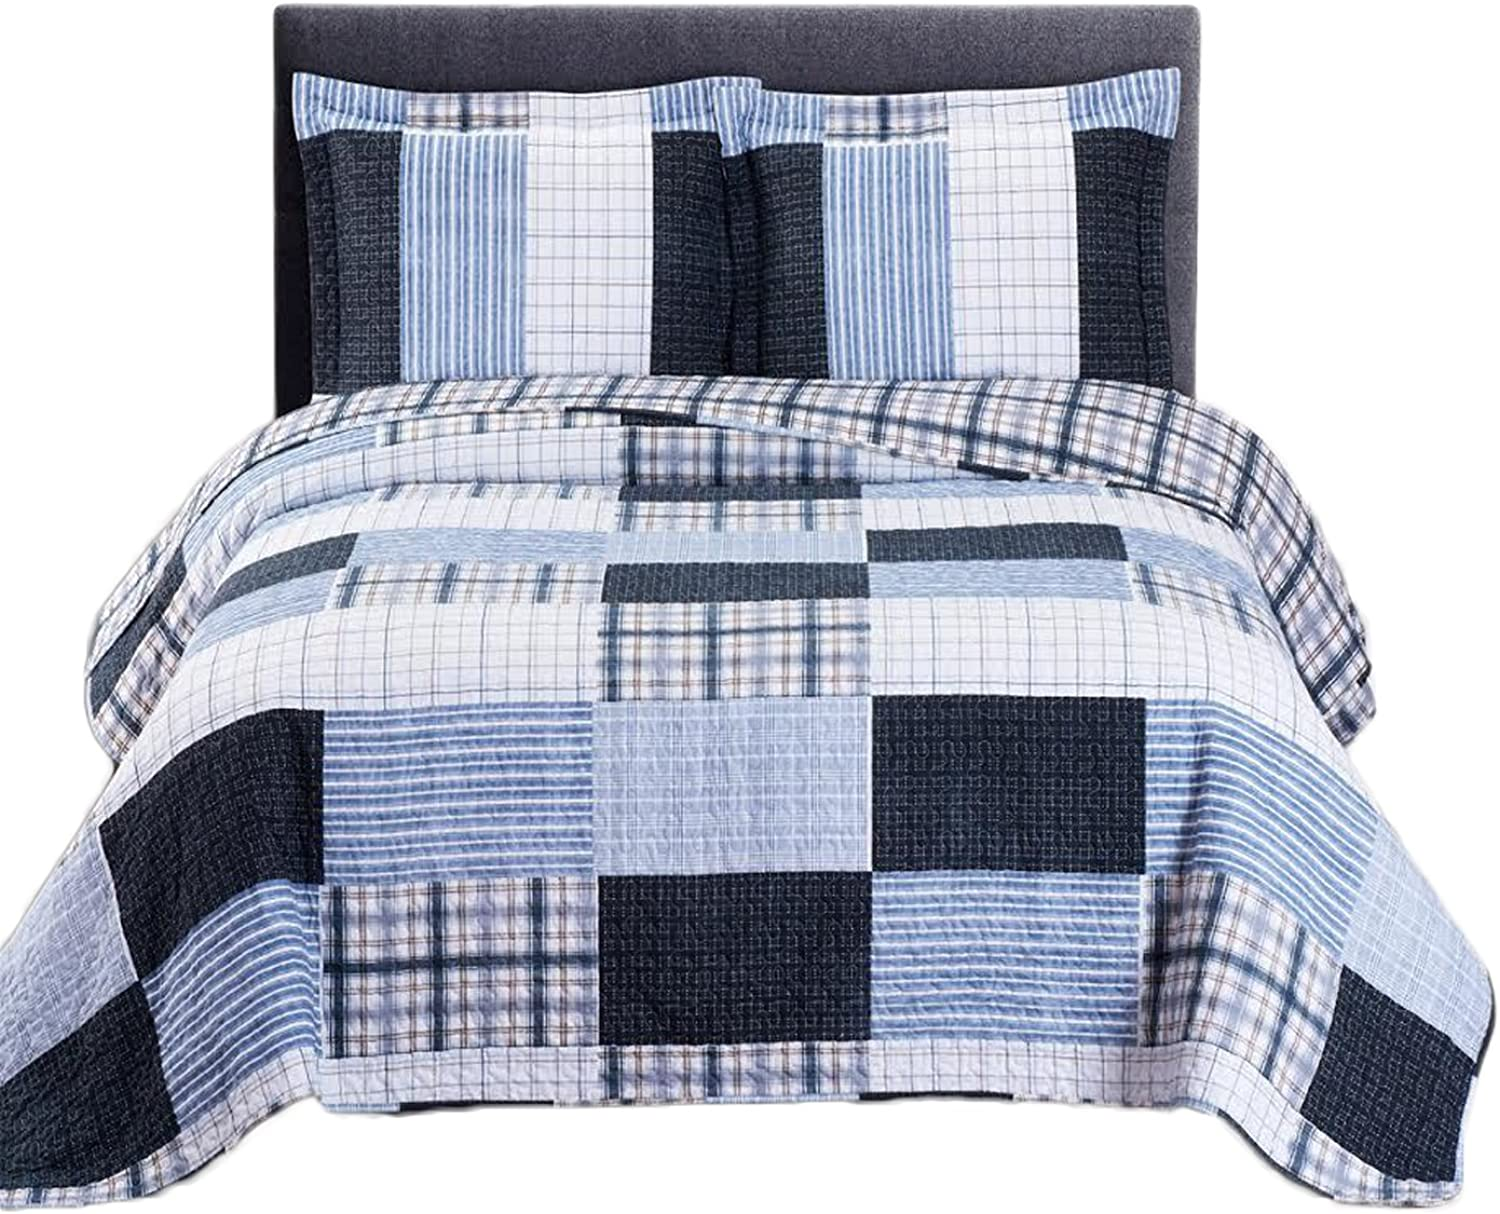 3pc set Zoe- Full Queen 92x96   Size, Over-Sized Quilt, Luxury Microfiber Printed Coverlet Bedspread Sets